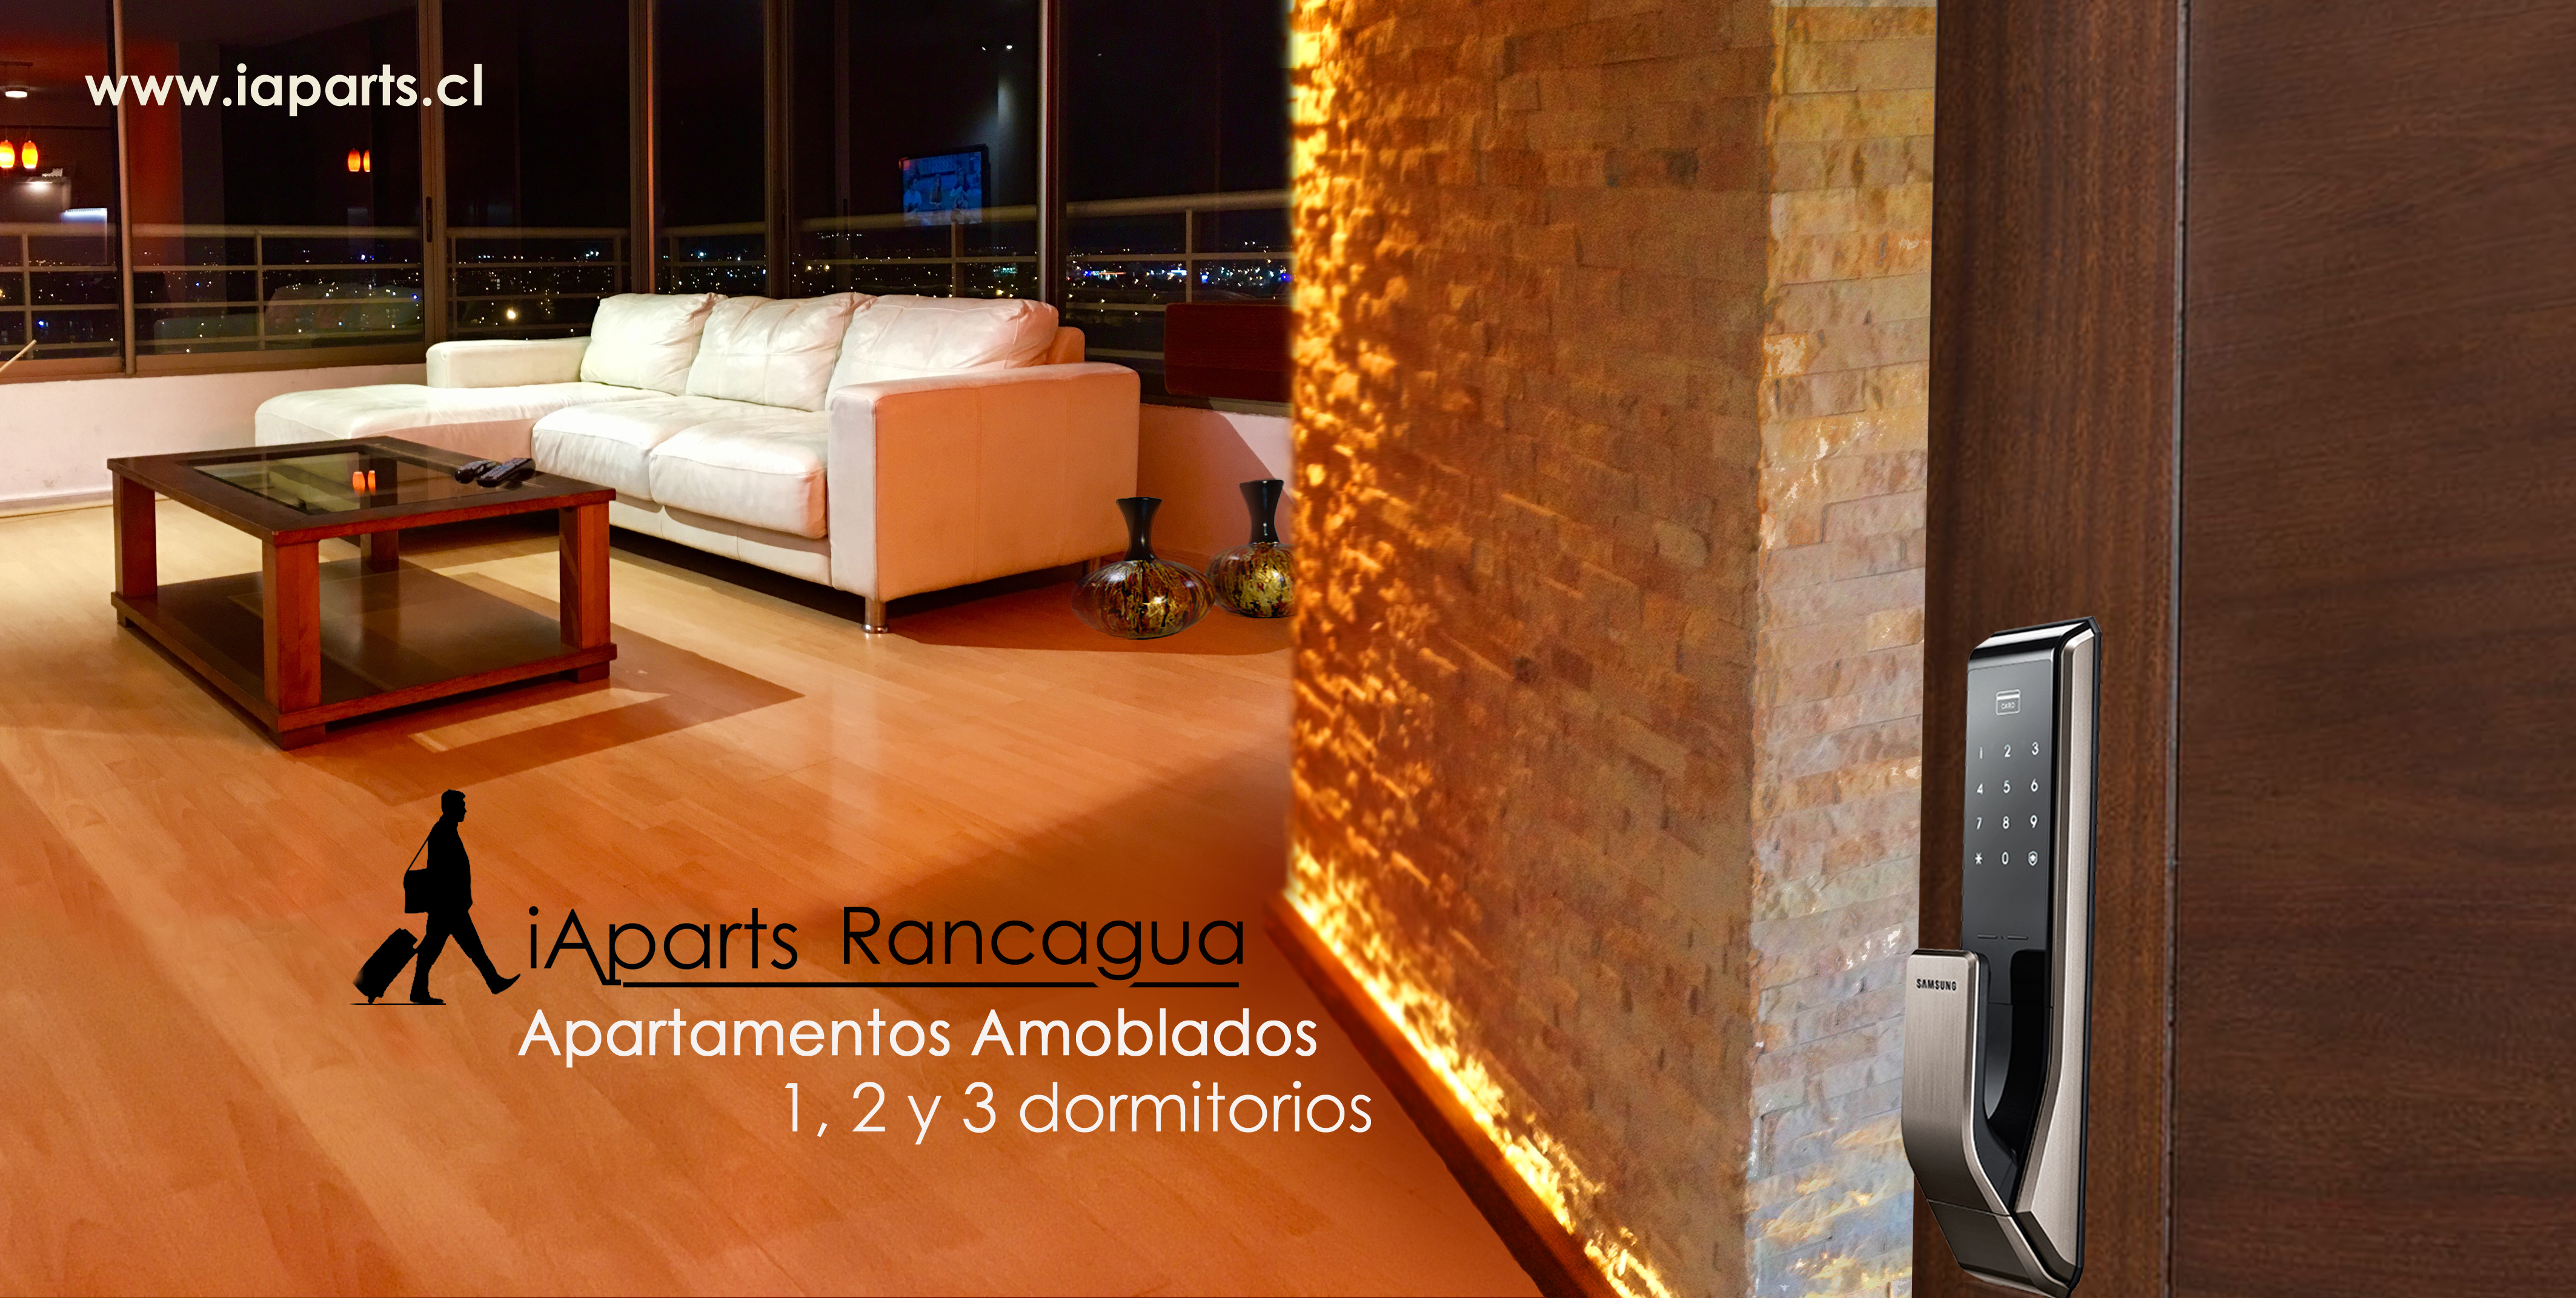 Accommodation in Rancagua, Chile. One, twoo and tree bedrooms apartments.